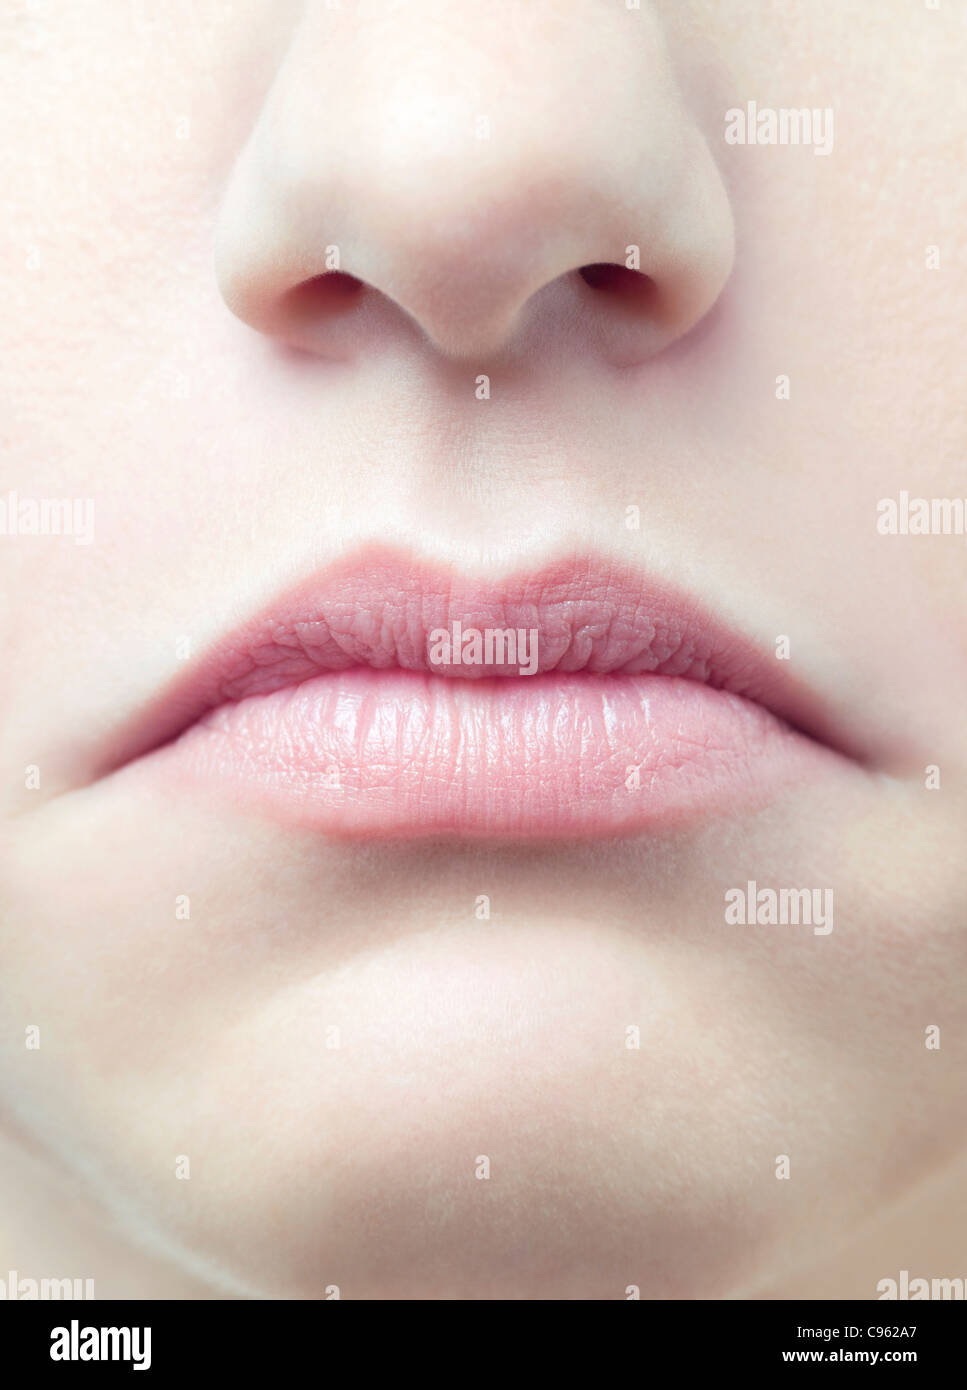 Unhappy woman's mouth. - Stock Image